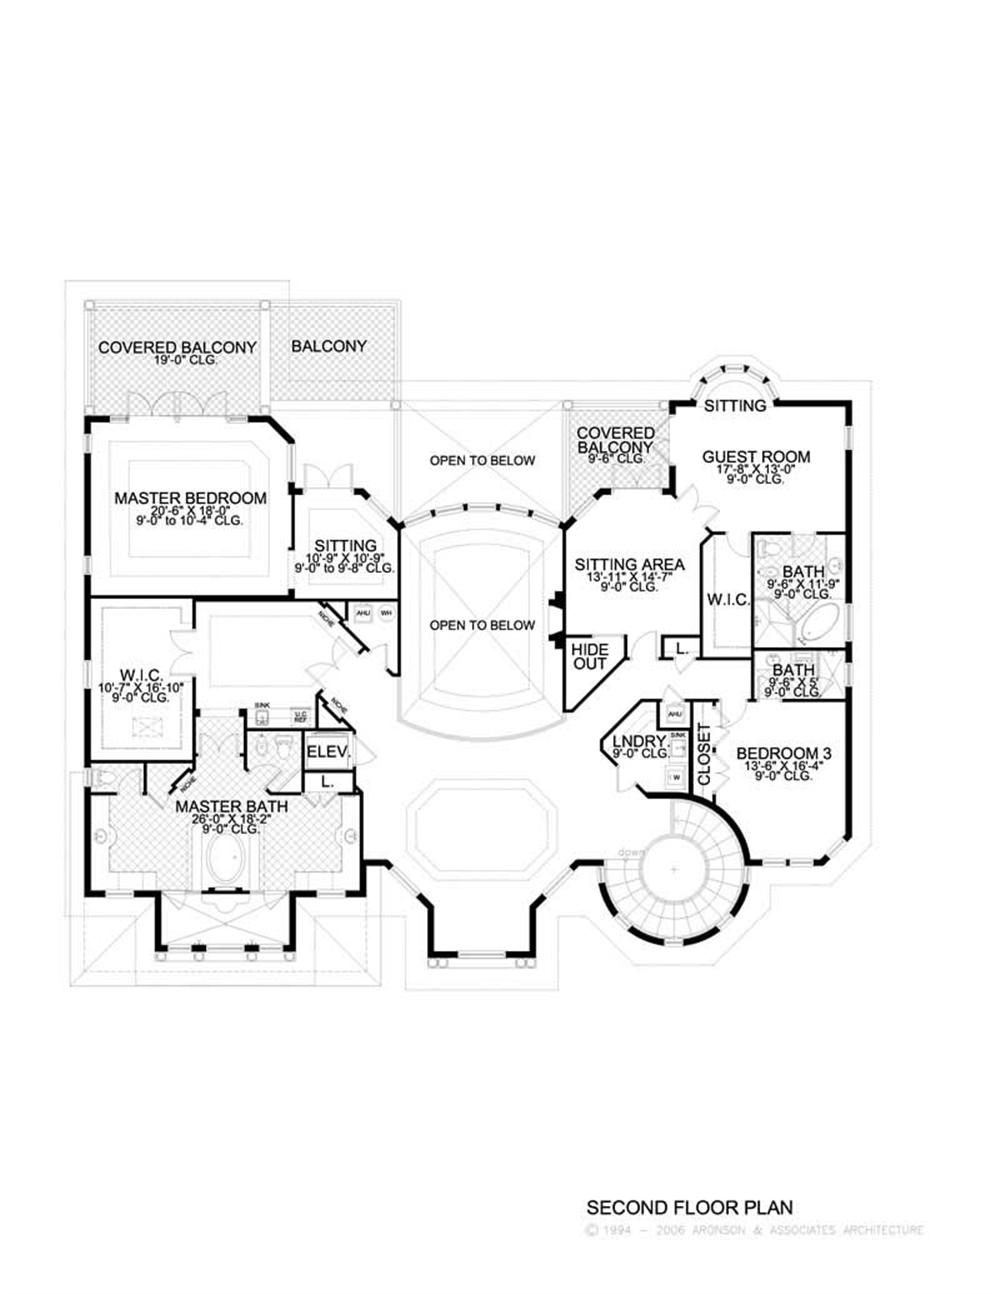 PLAN HOUSE FLOOR PLAN